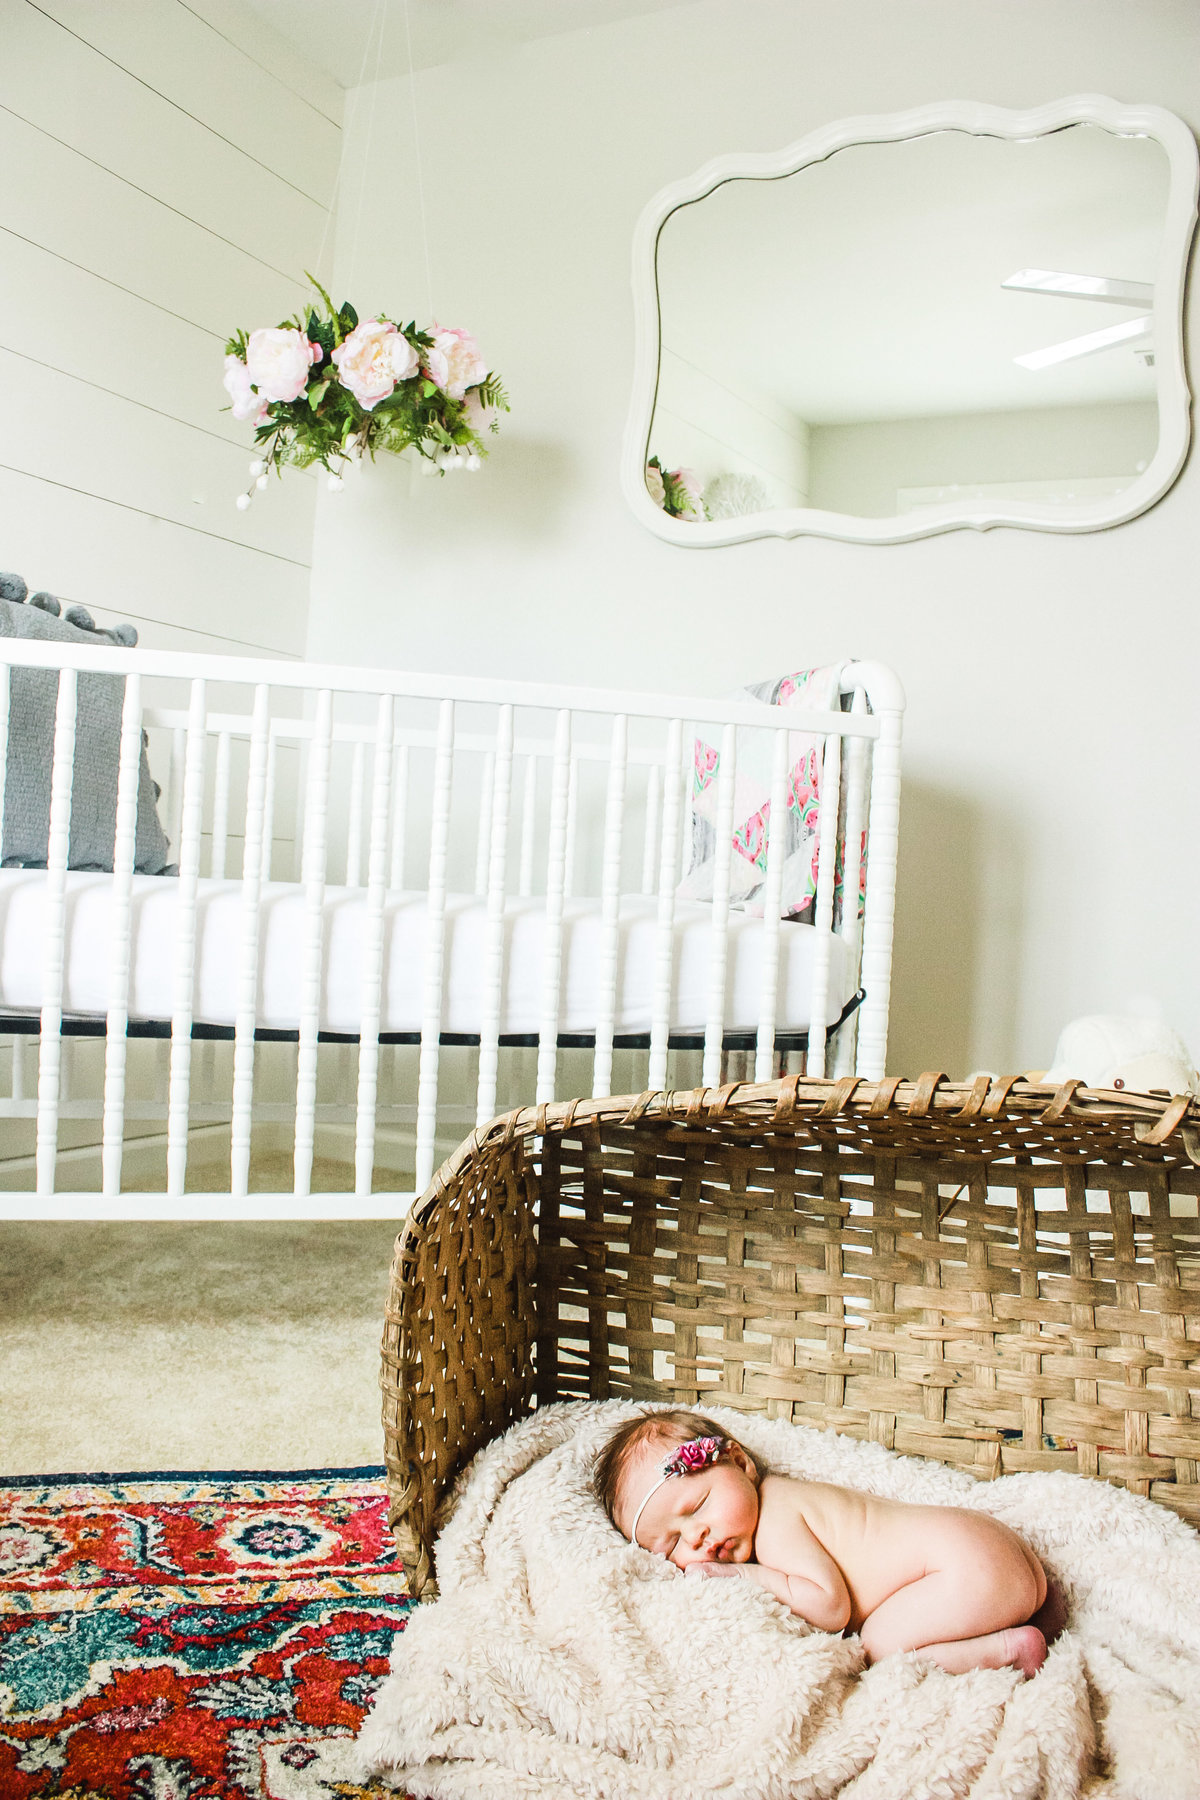 The nursery, baby in a basket, girl, newborn photography, in-home photoshoot